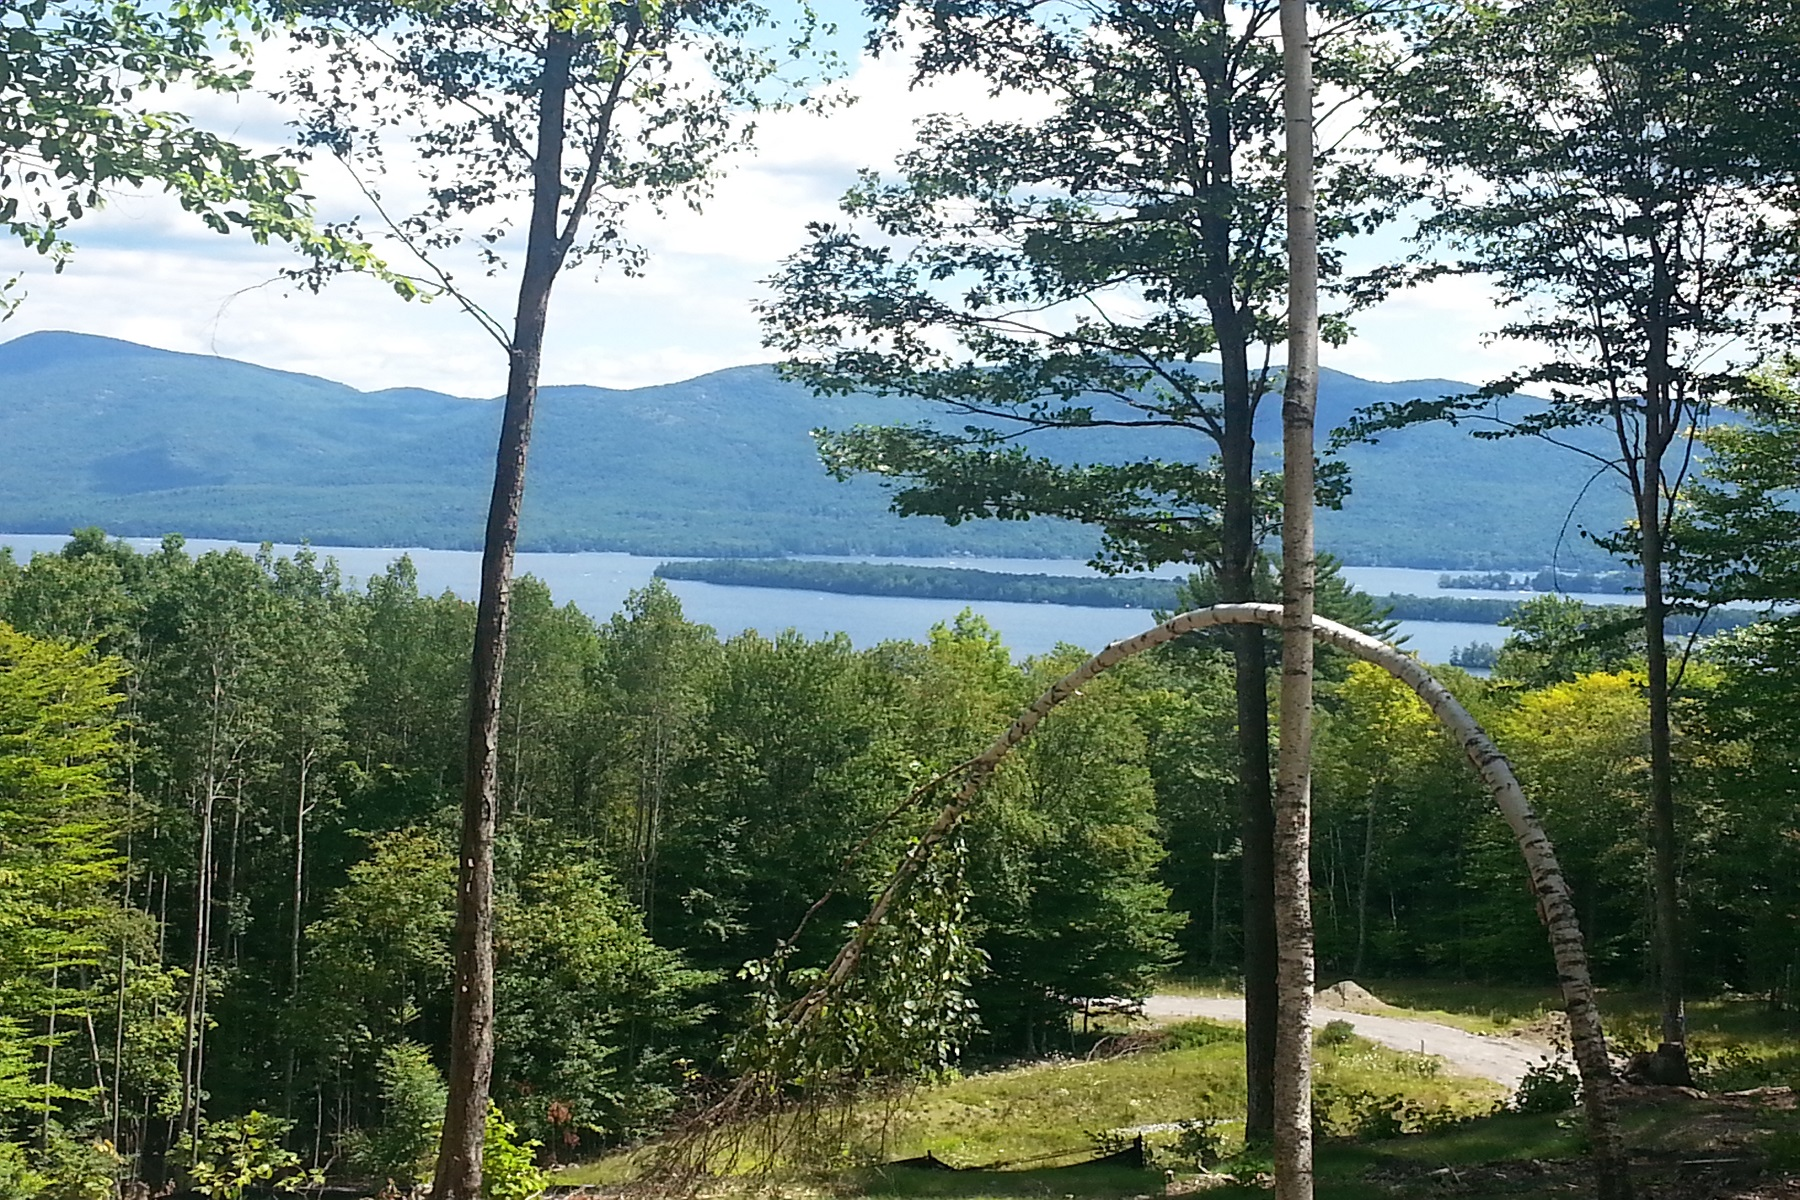 Terreno por un Venta en Lake George Building Lot 145 Watershed Drive Lake George, Nueva York 12845 Estados Unidos